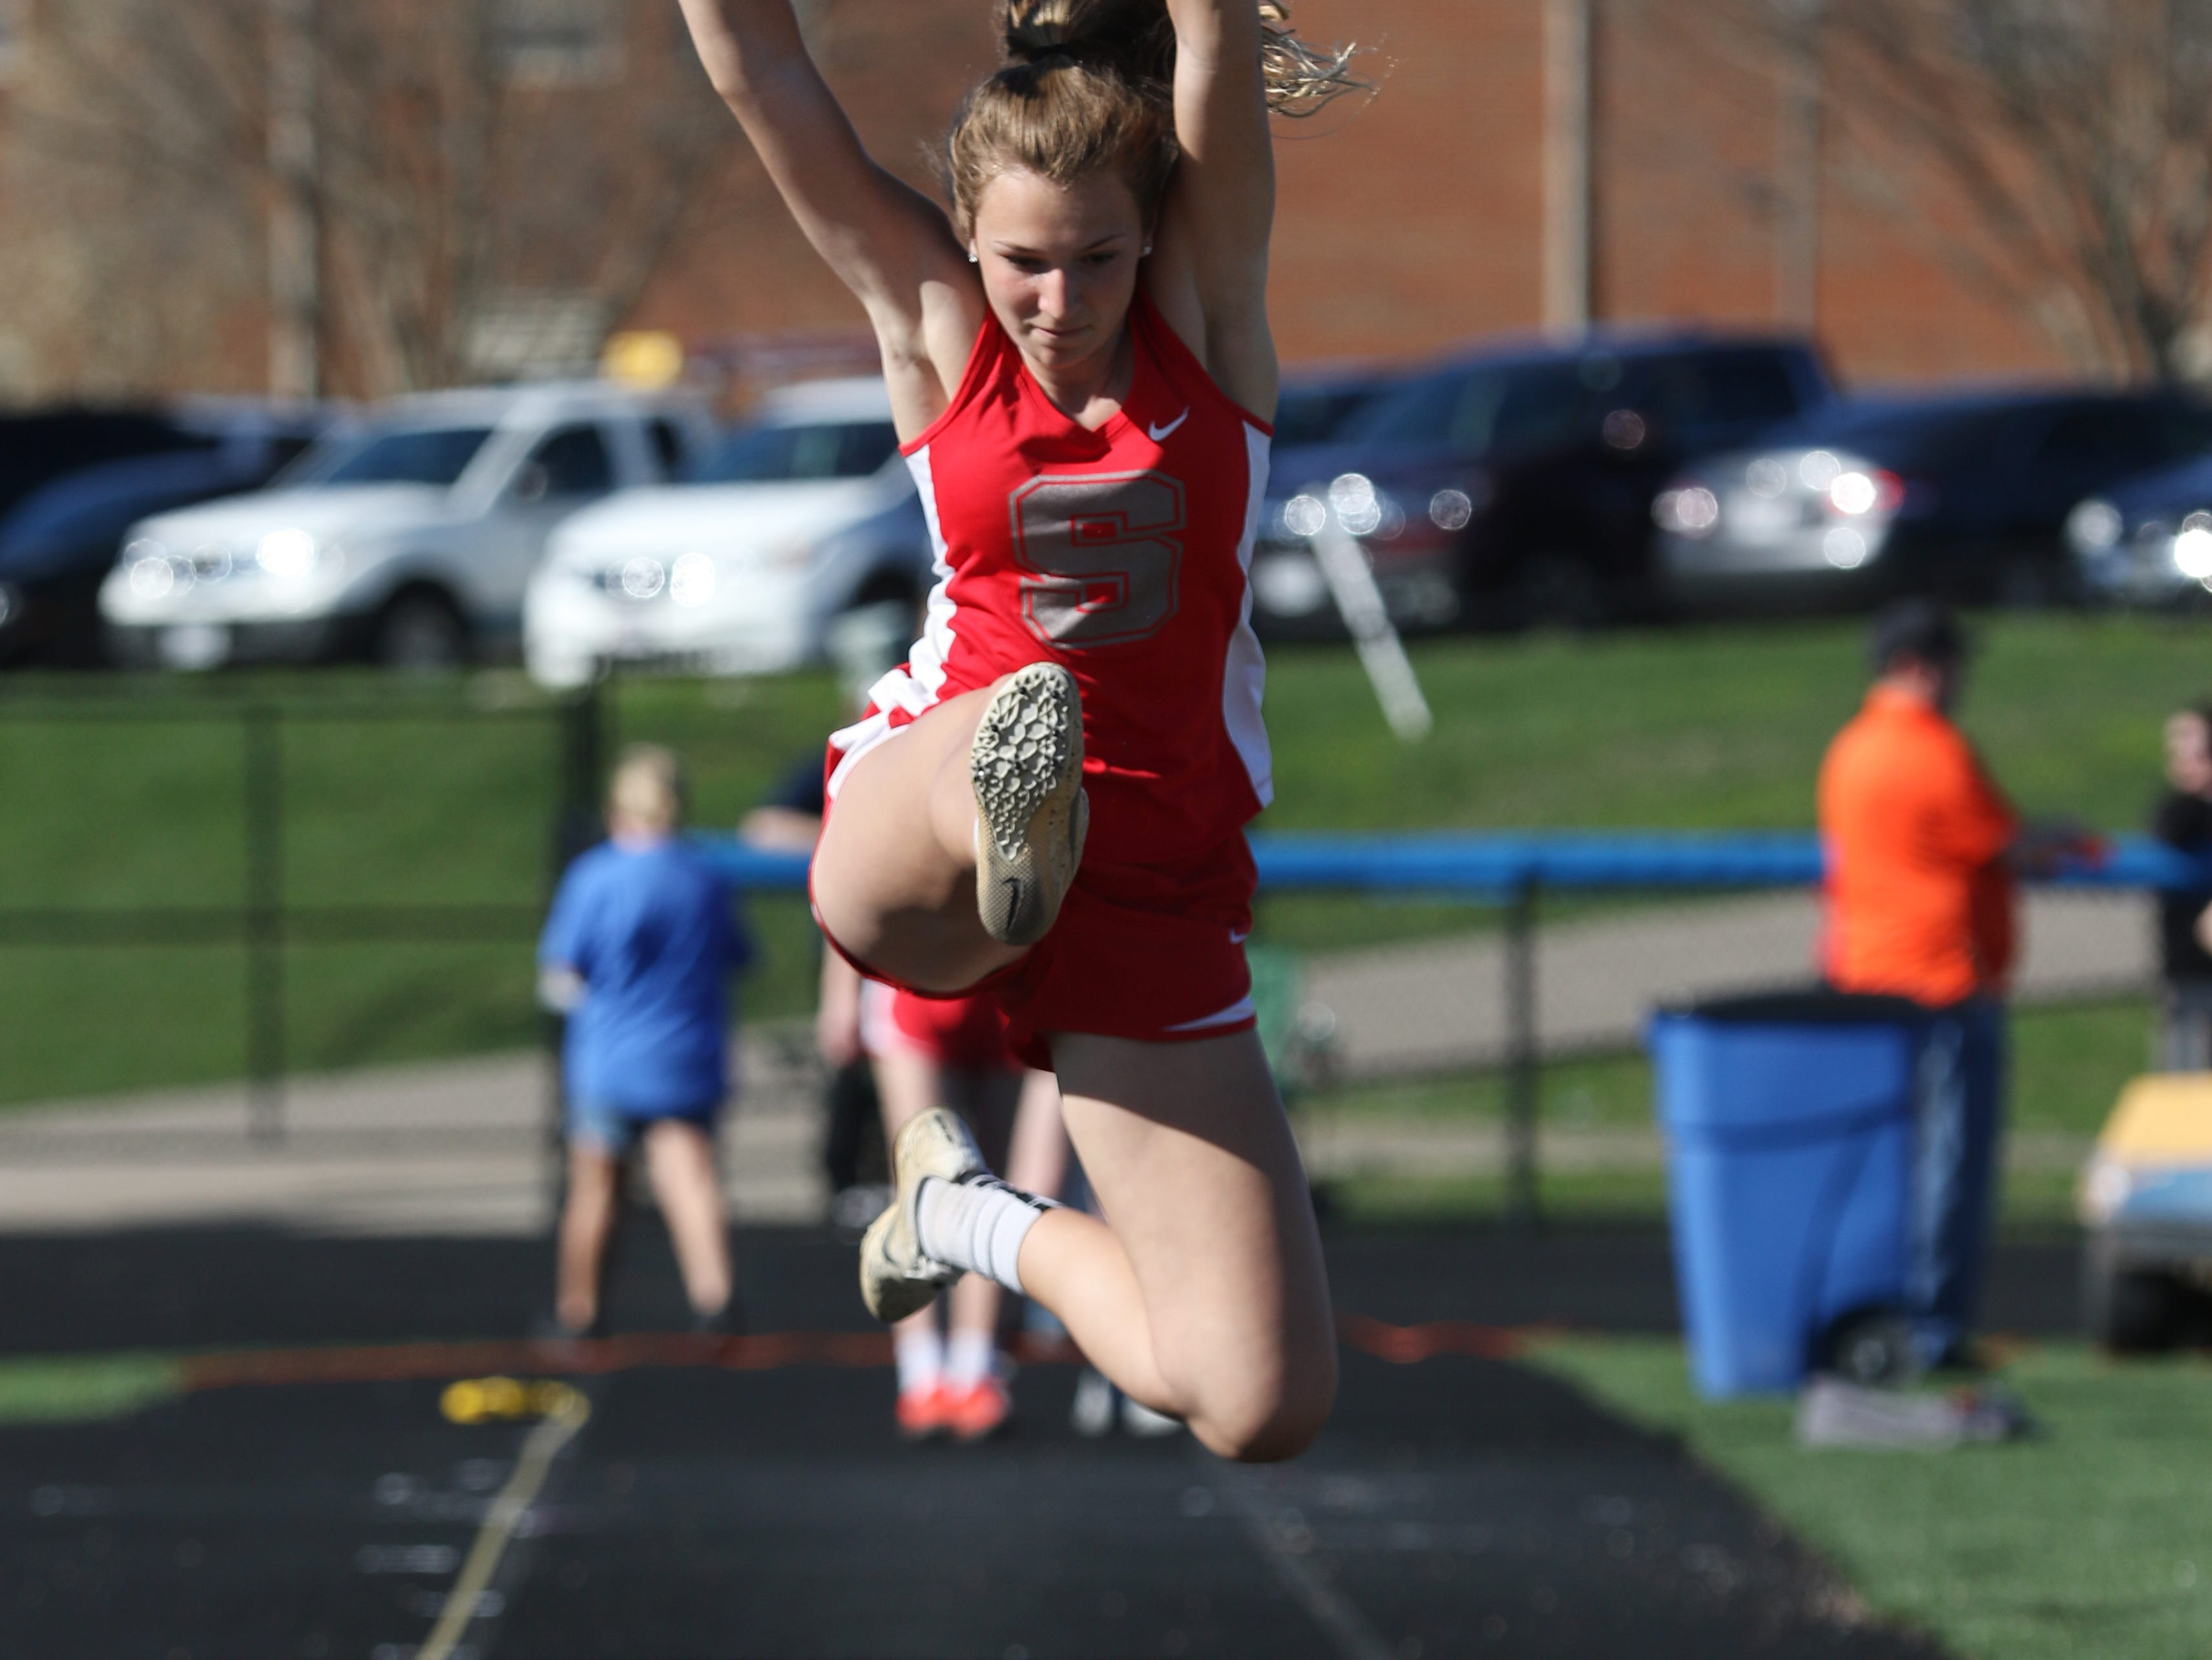 Sheridan's Katelyn Heath competes in the long jump during Tuesday's tri-meet between Sheridan, New Lexington and host Maysville.